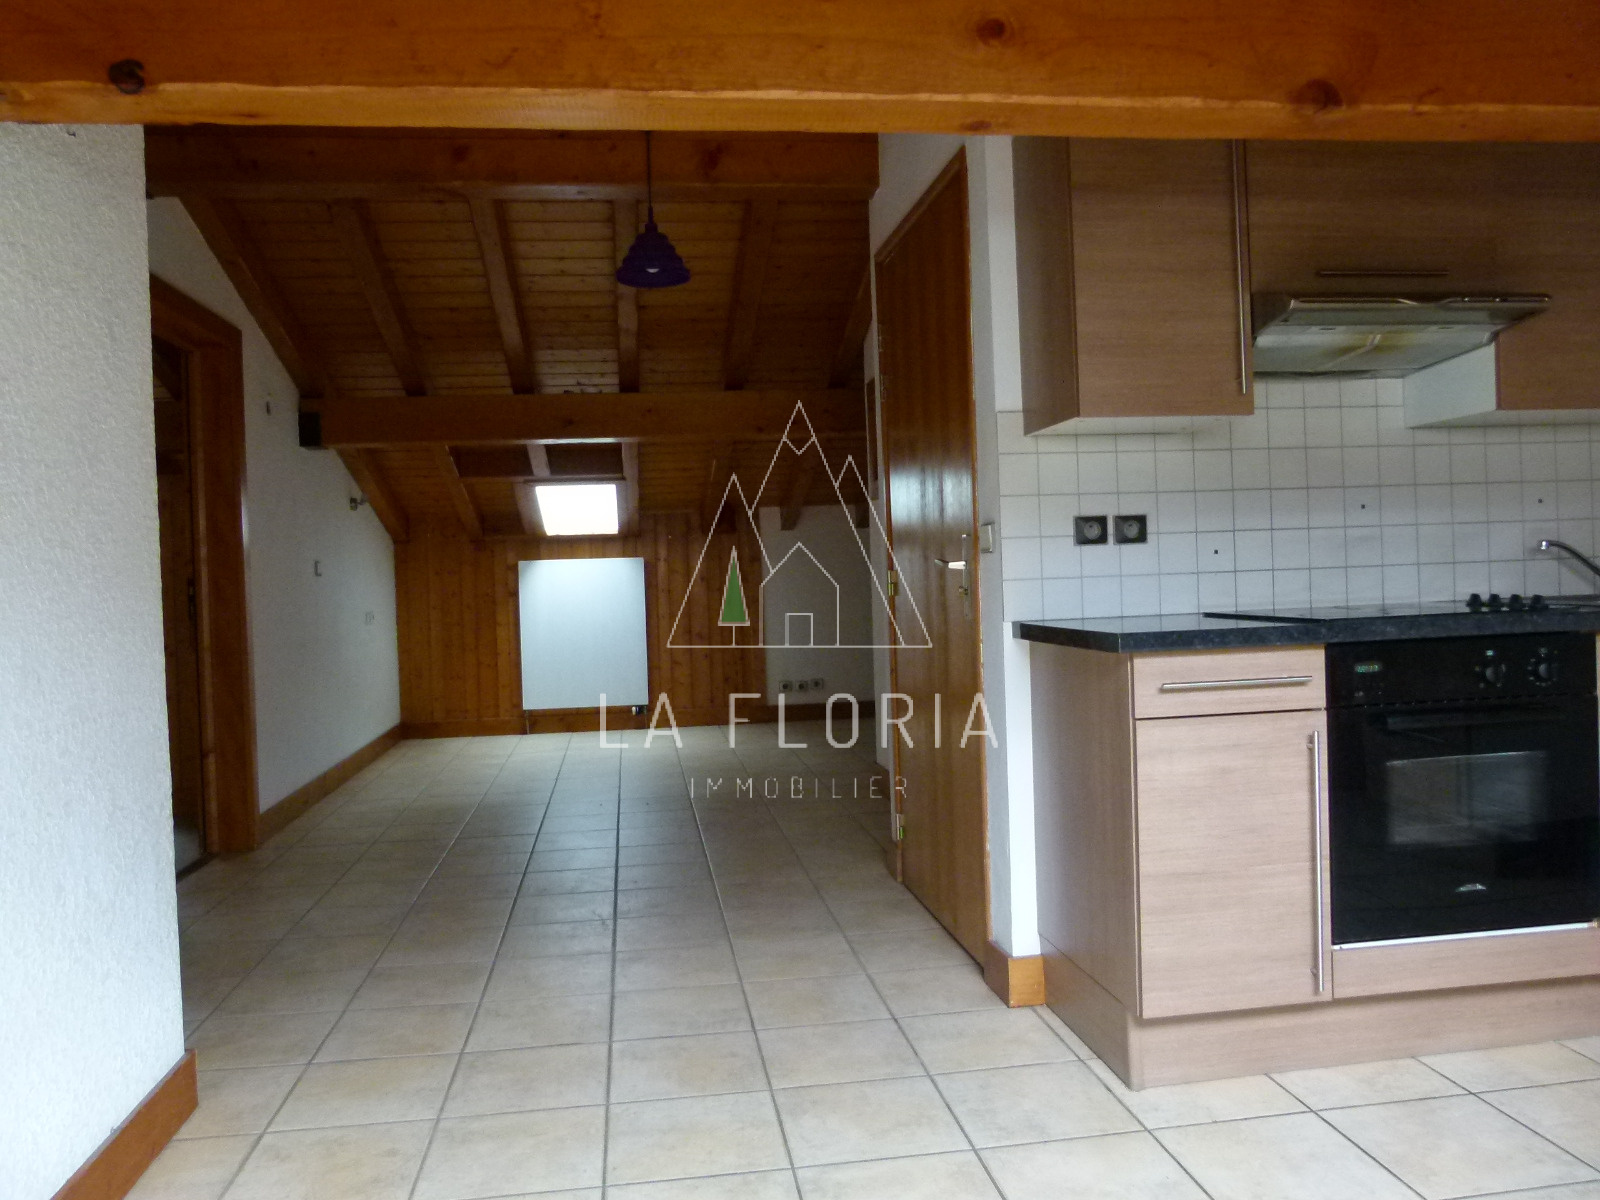 TOP FLOOR 2 BED / 2 BATH APARTMENT NEAR SKI AND GOLF, CHAMONIX LES PRAZ